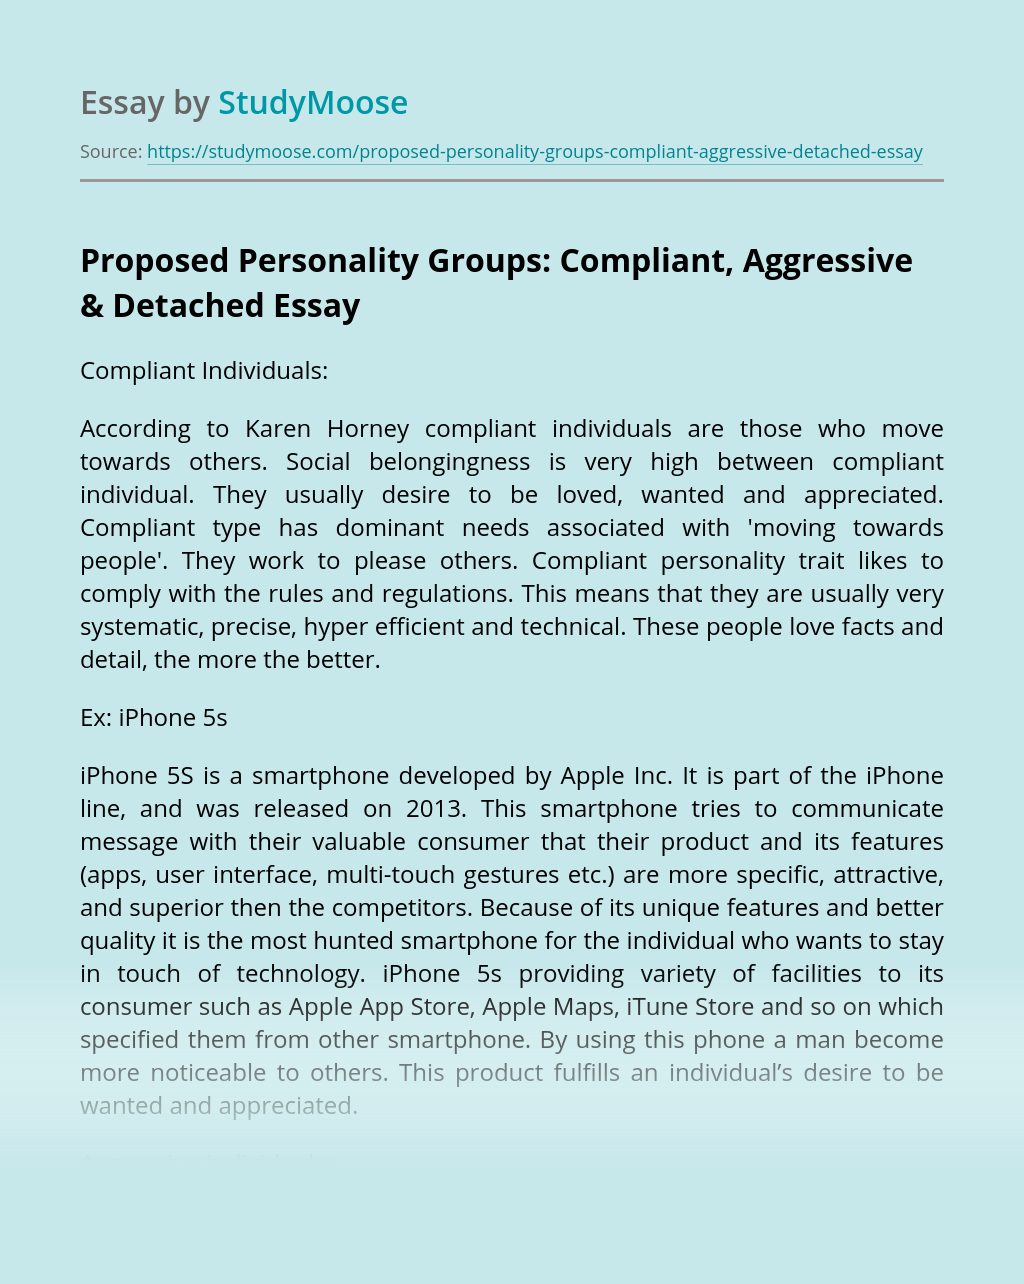 Proposed Personality Groups: Compliant, Aggressive & Detached